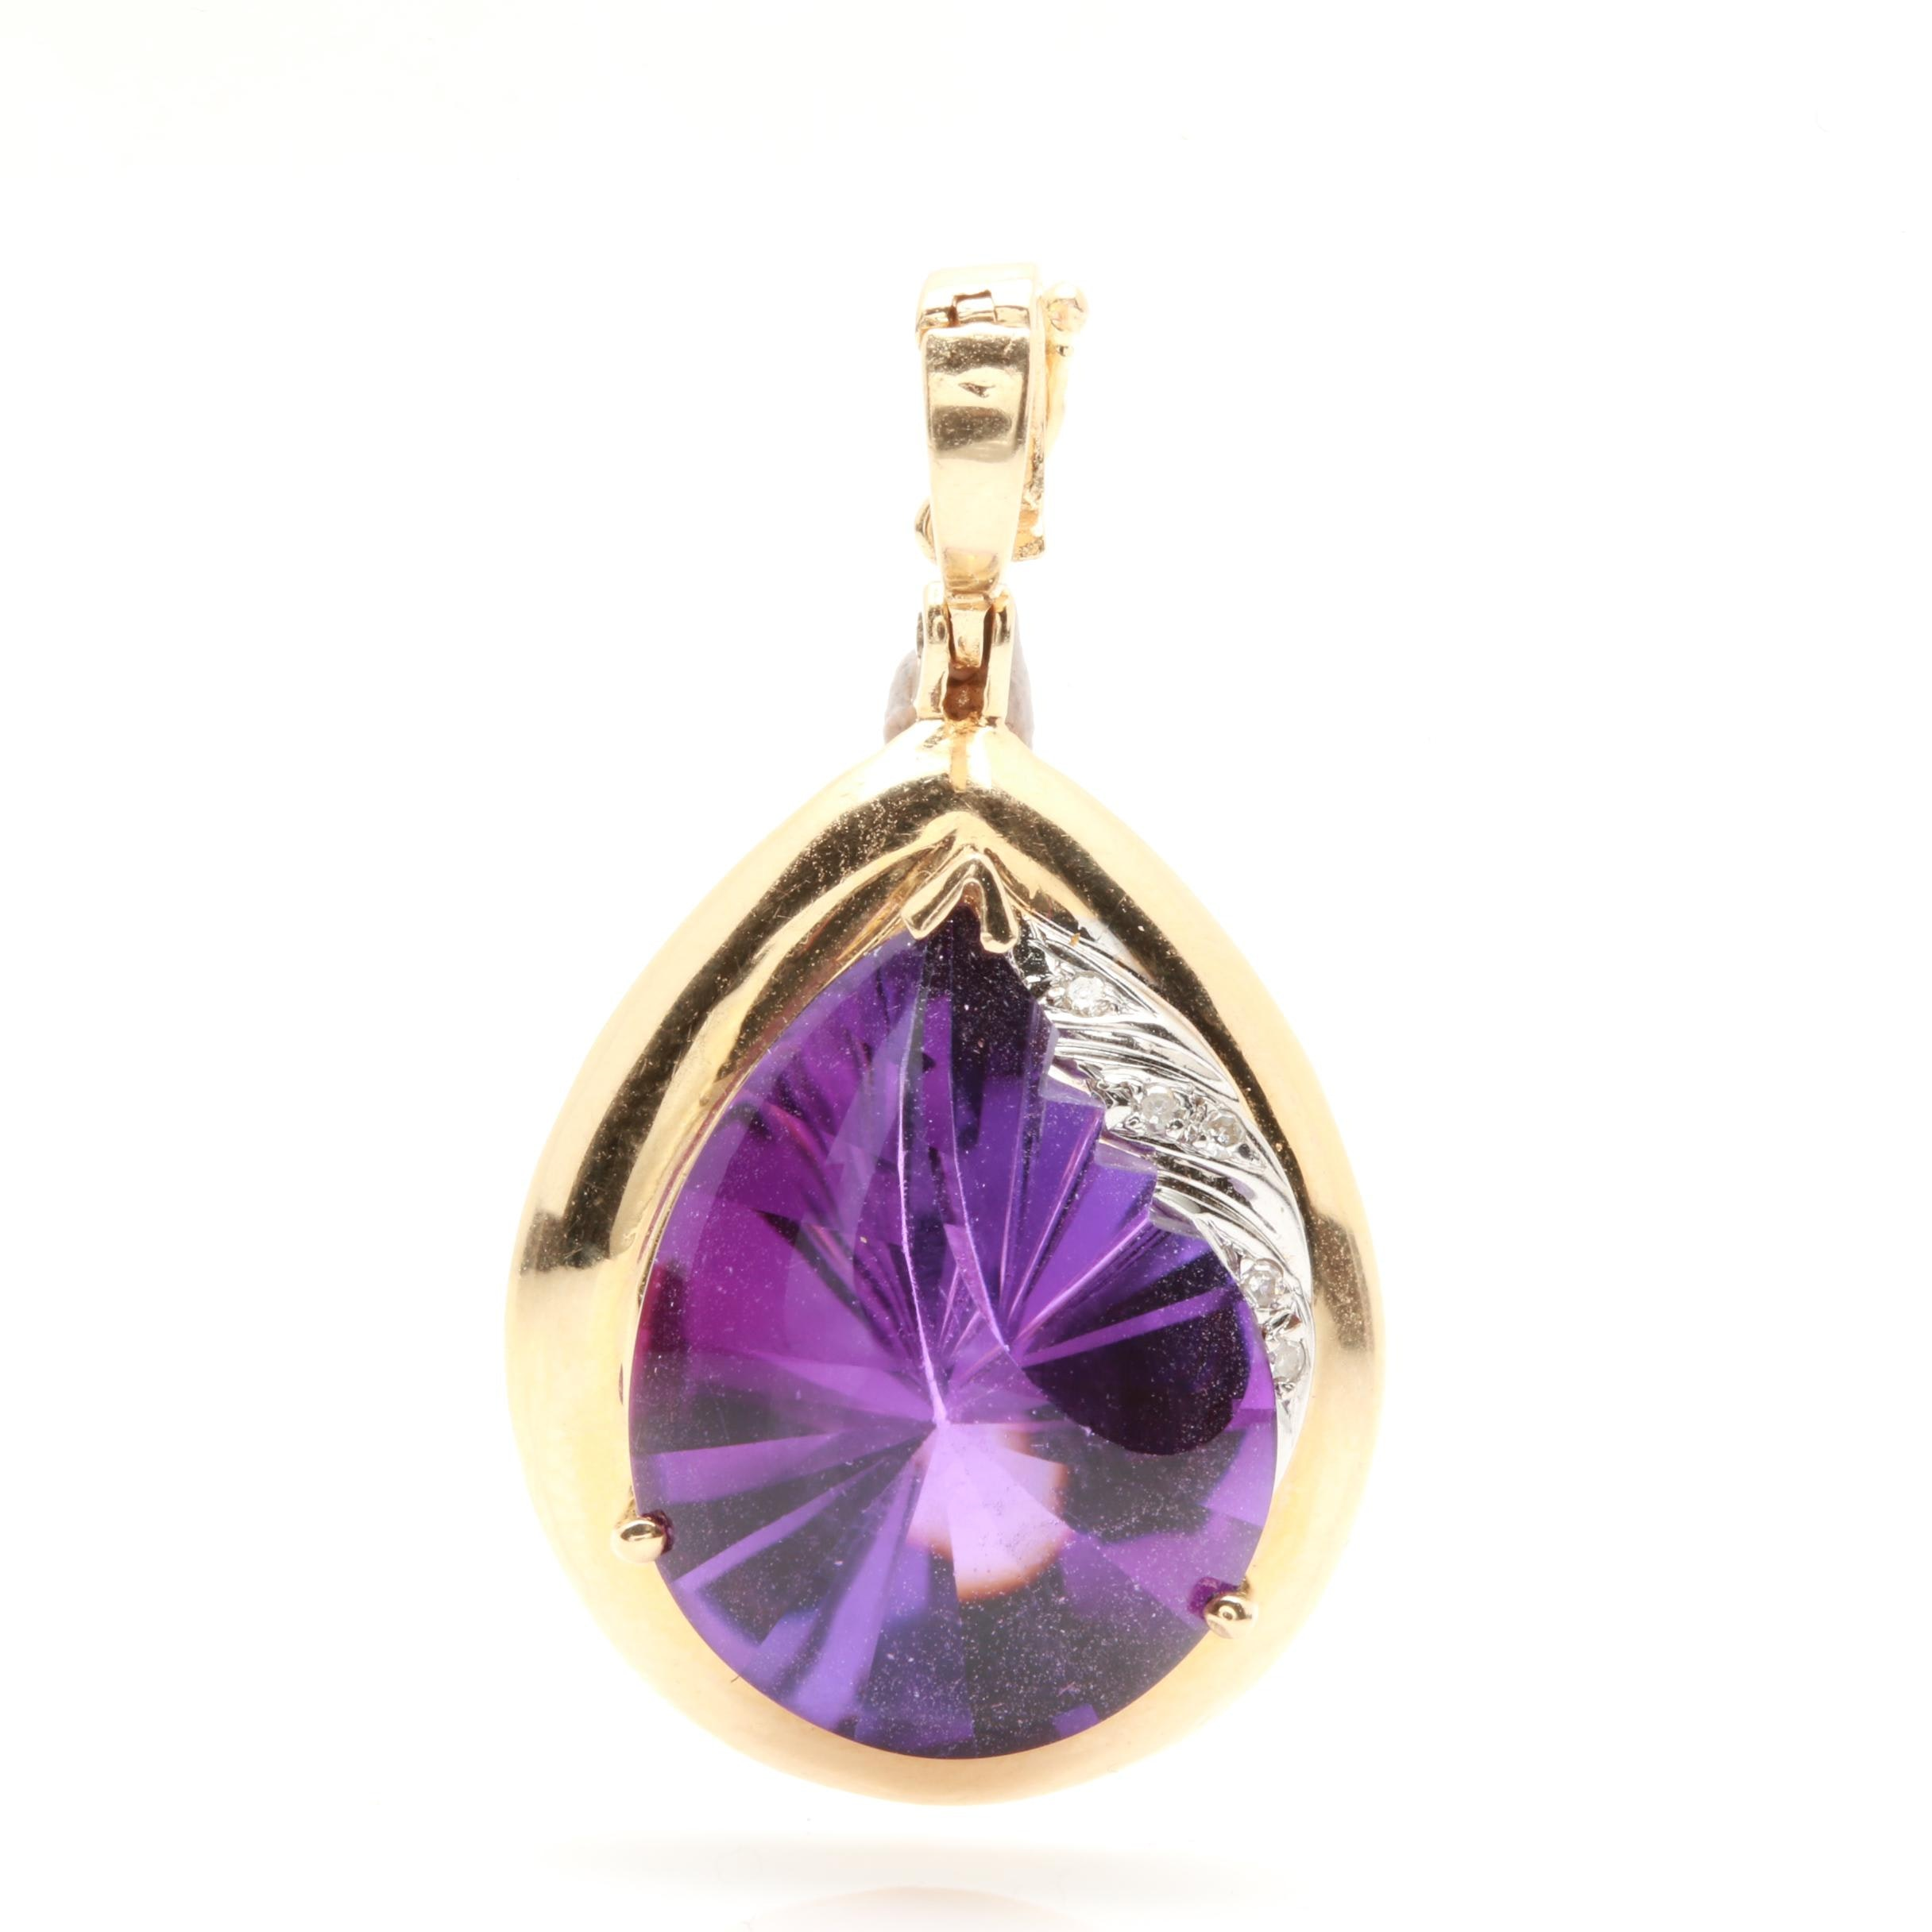 14K Yellow Gold Amethyst and Diamond Enhancer Pendant with White Gold Accents